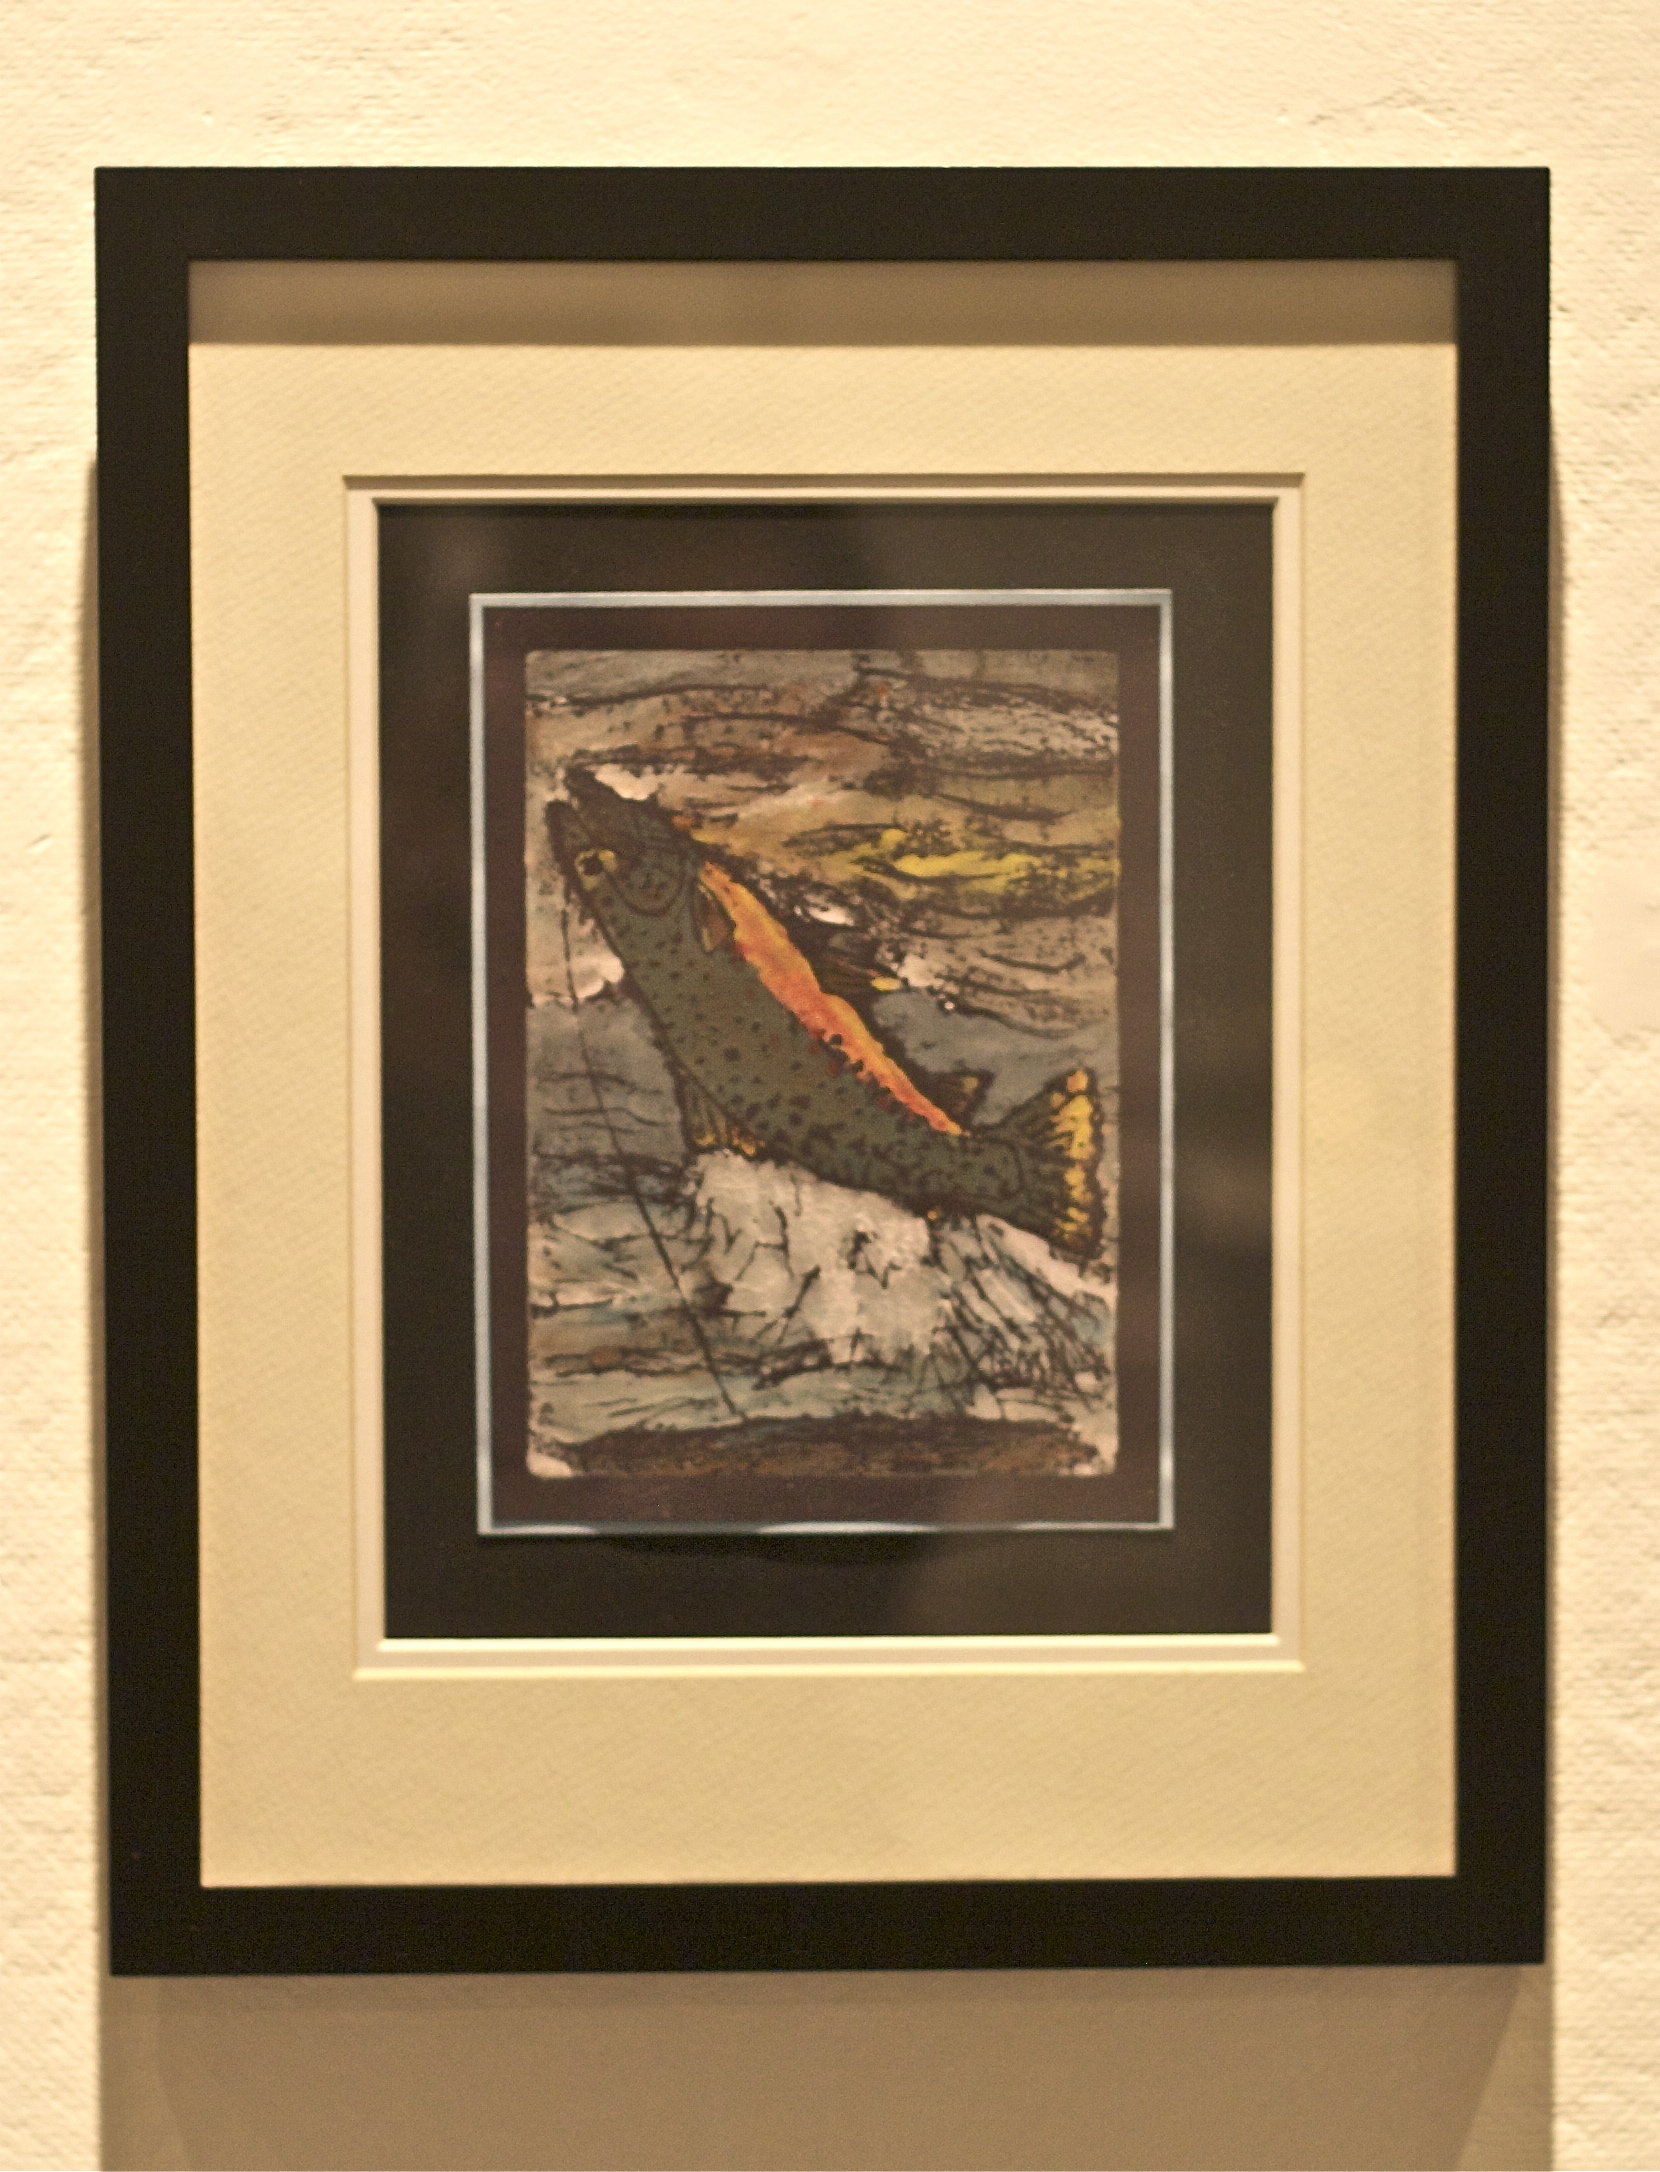 Trout Rising, by Joan Avato